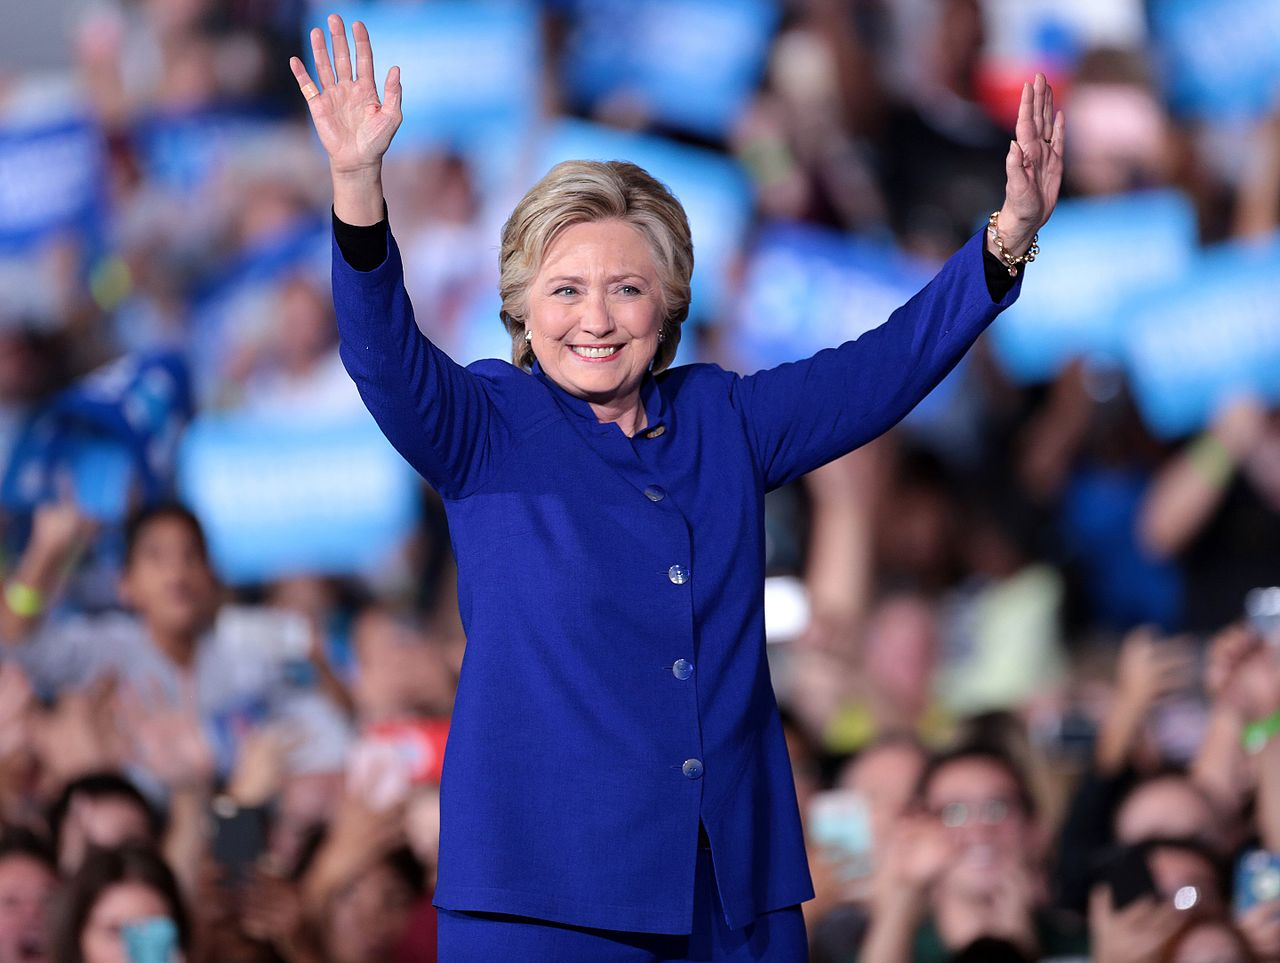 Clinton in a blue suit, looking toward the camera. Audience members in the background. She is at a speaking event in Tempe on November 2, 2016.